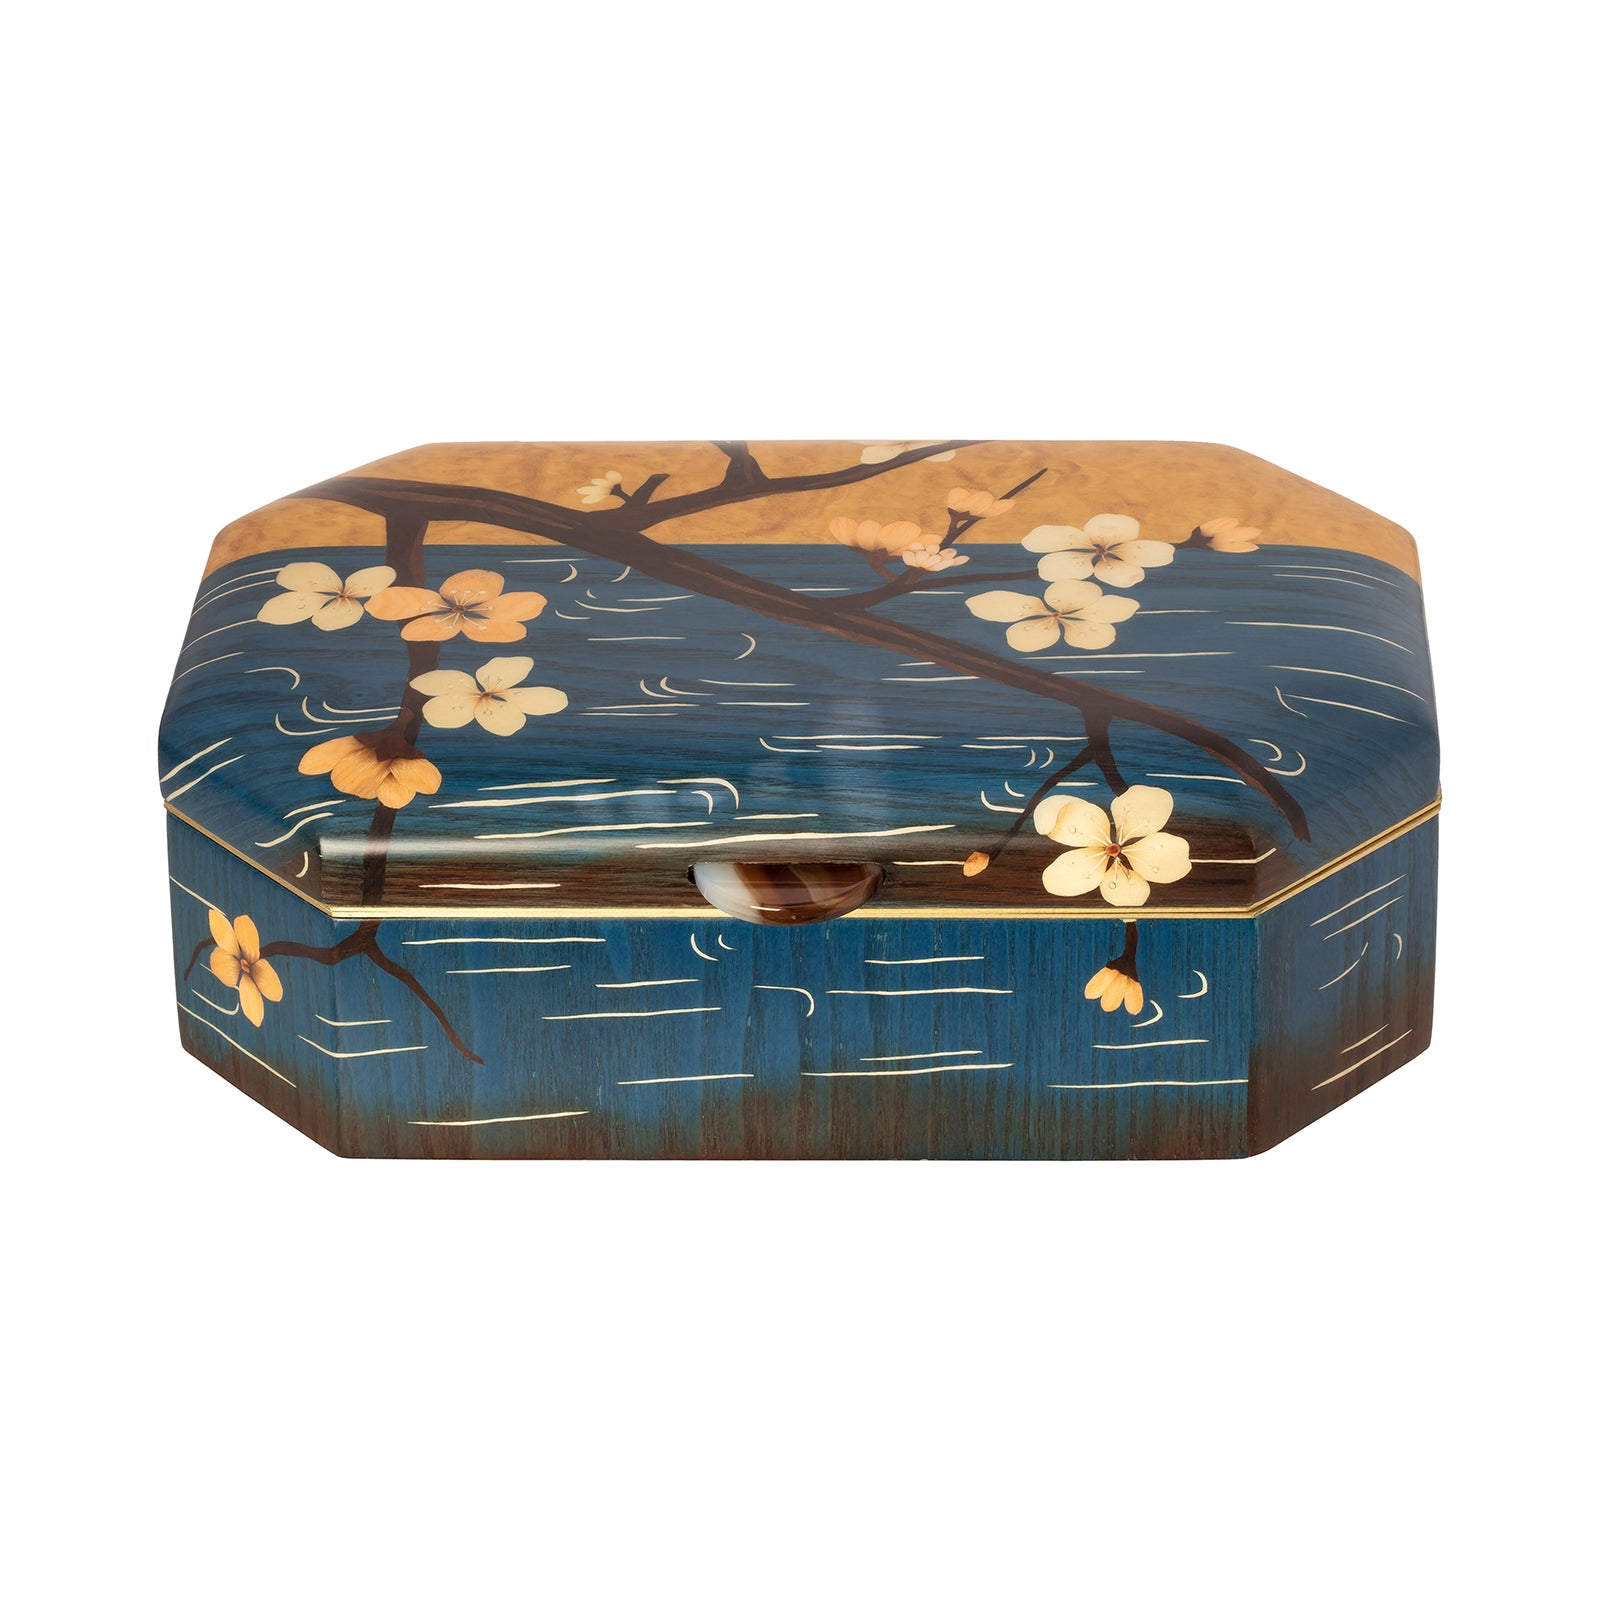 Silvia Furmanovich Marquetry Wood Jewelry Box - Cherry Blossom - Home & Decor - Broken English Jewelry